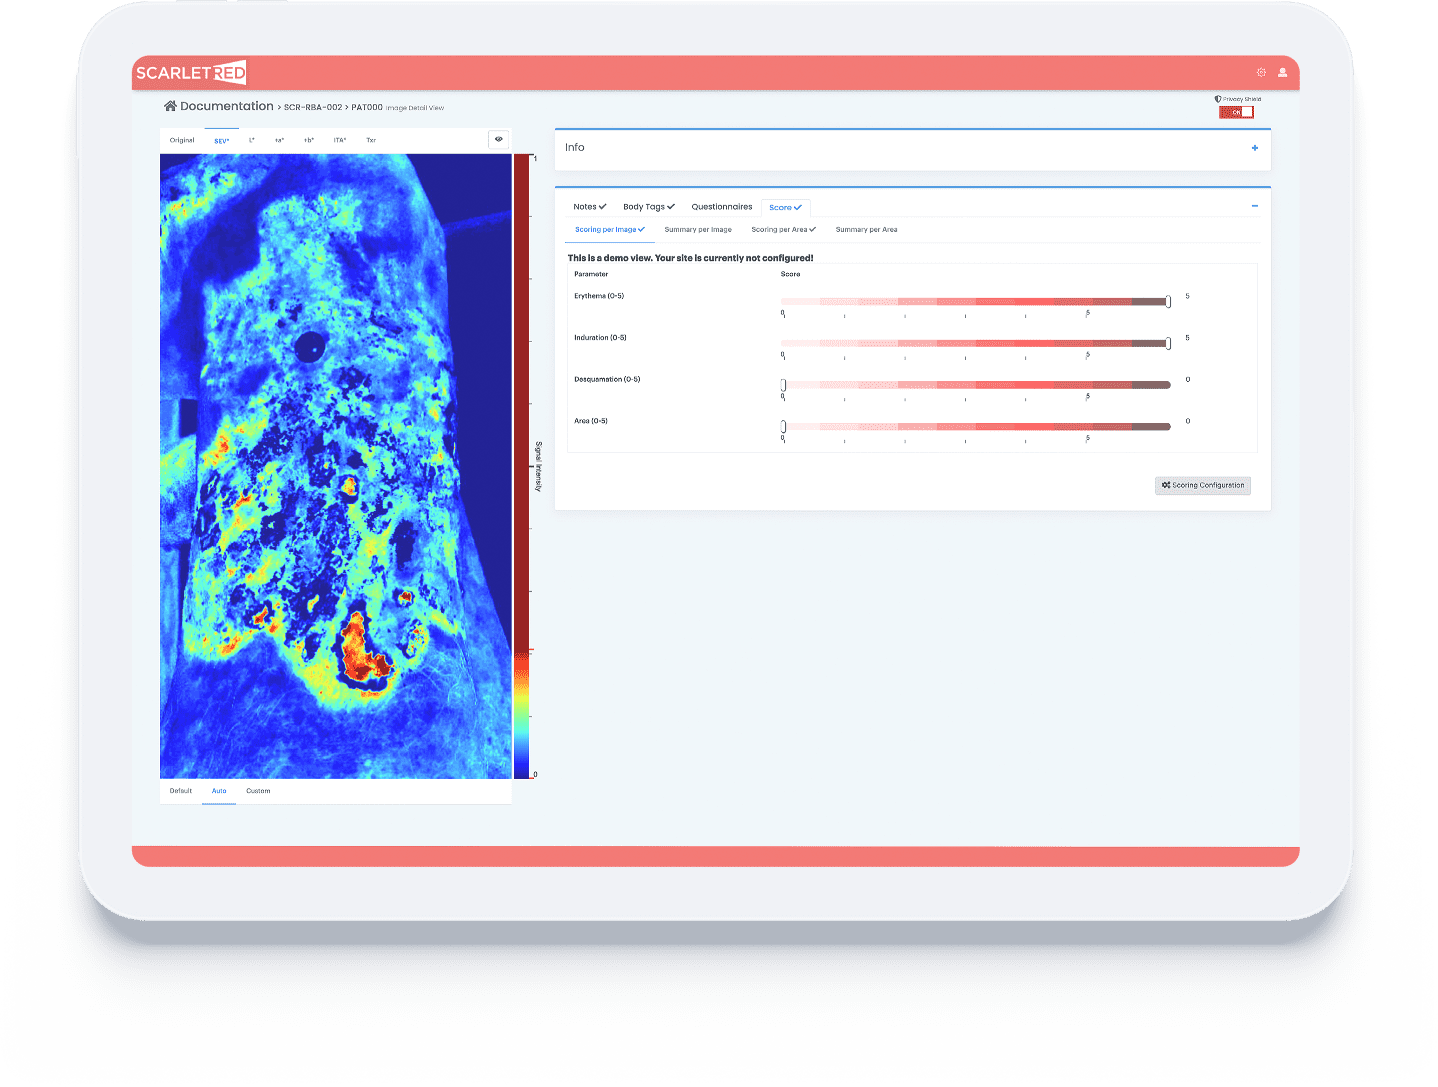 Documentation overview of an epidermolysis bullosa wound on the ScarletredVision online platform